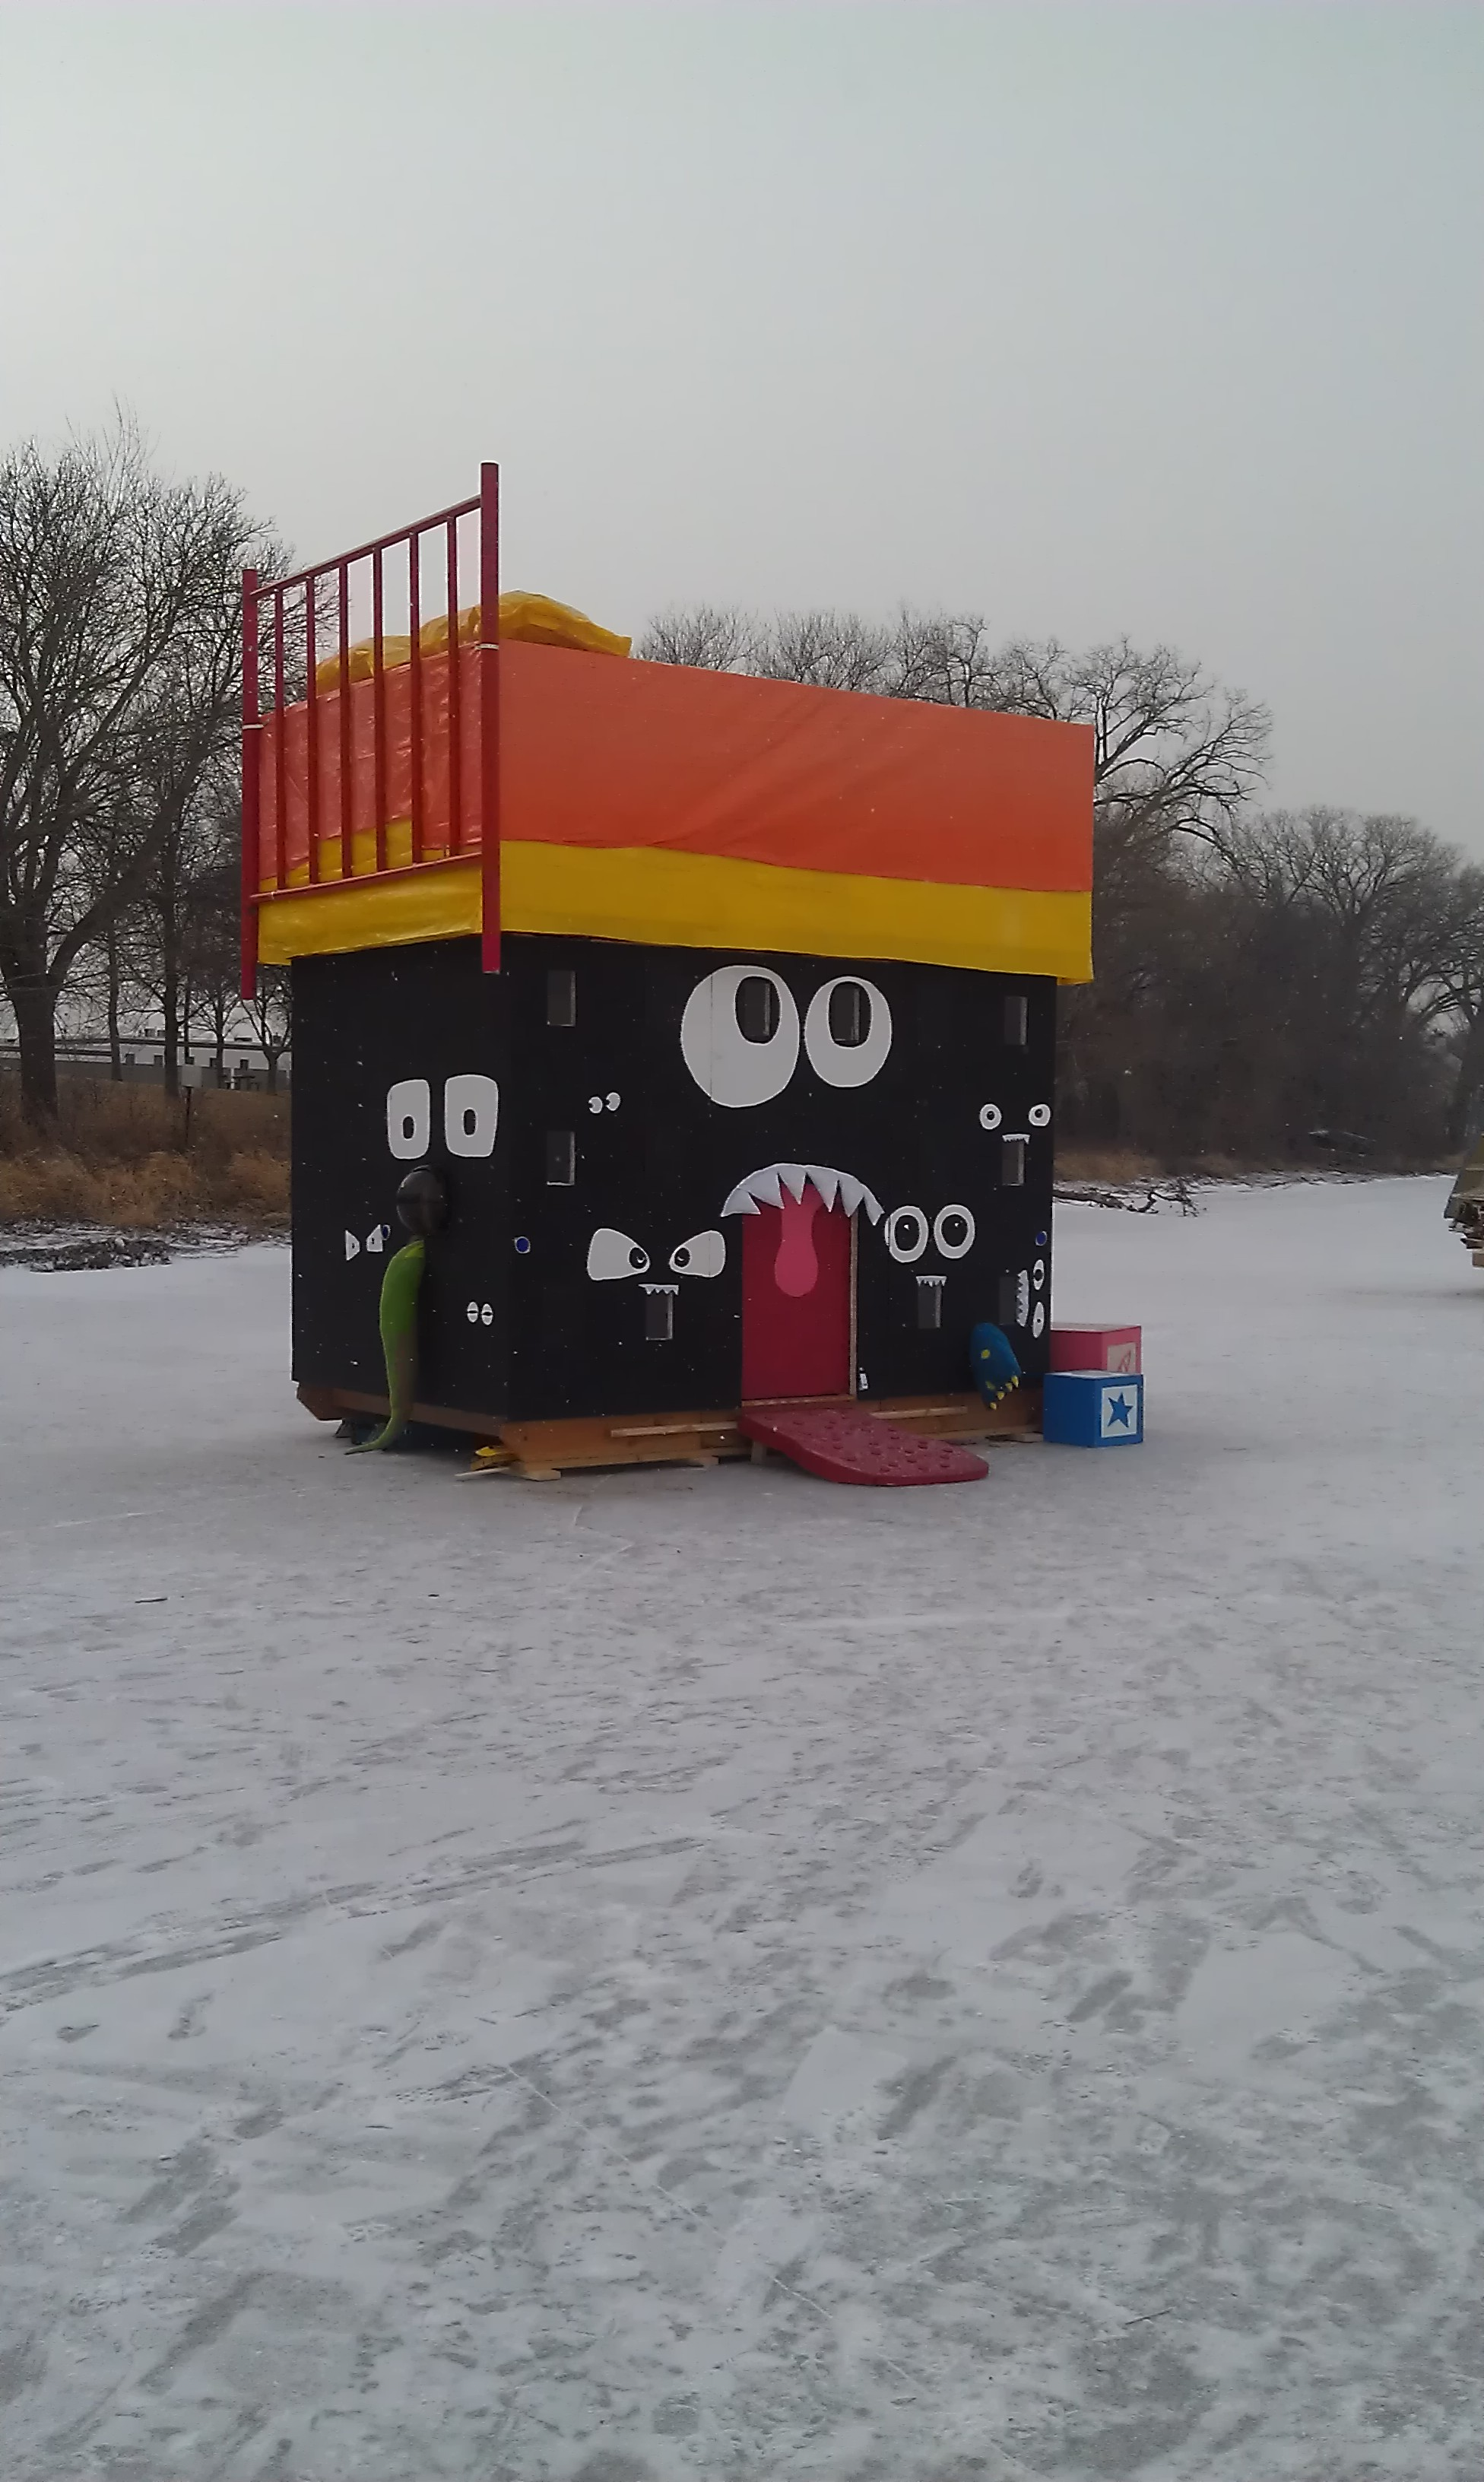 How to build an art shanty boing boing for How much to build a house in mn